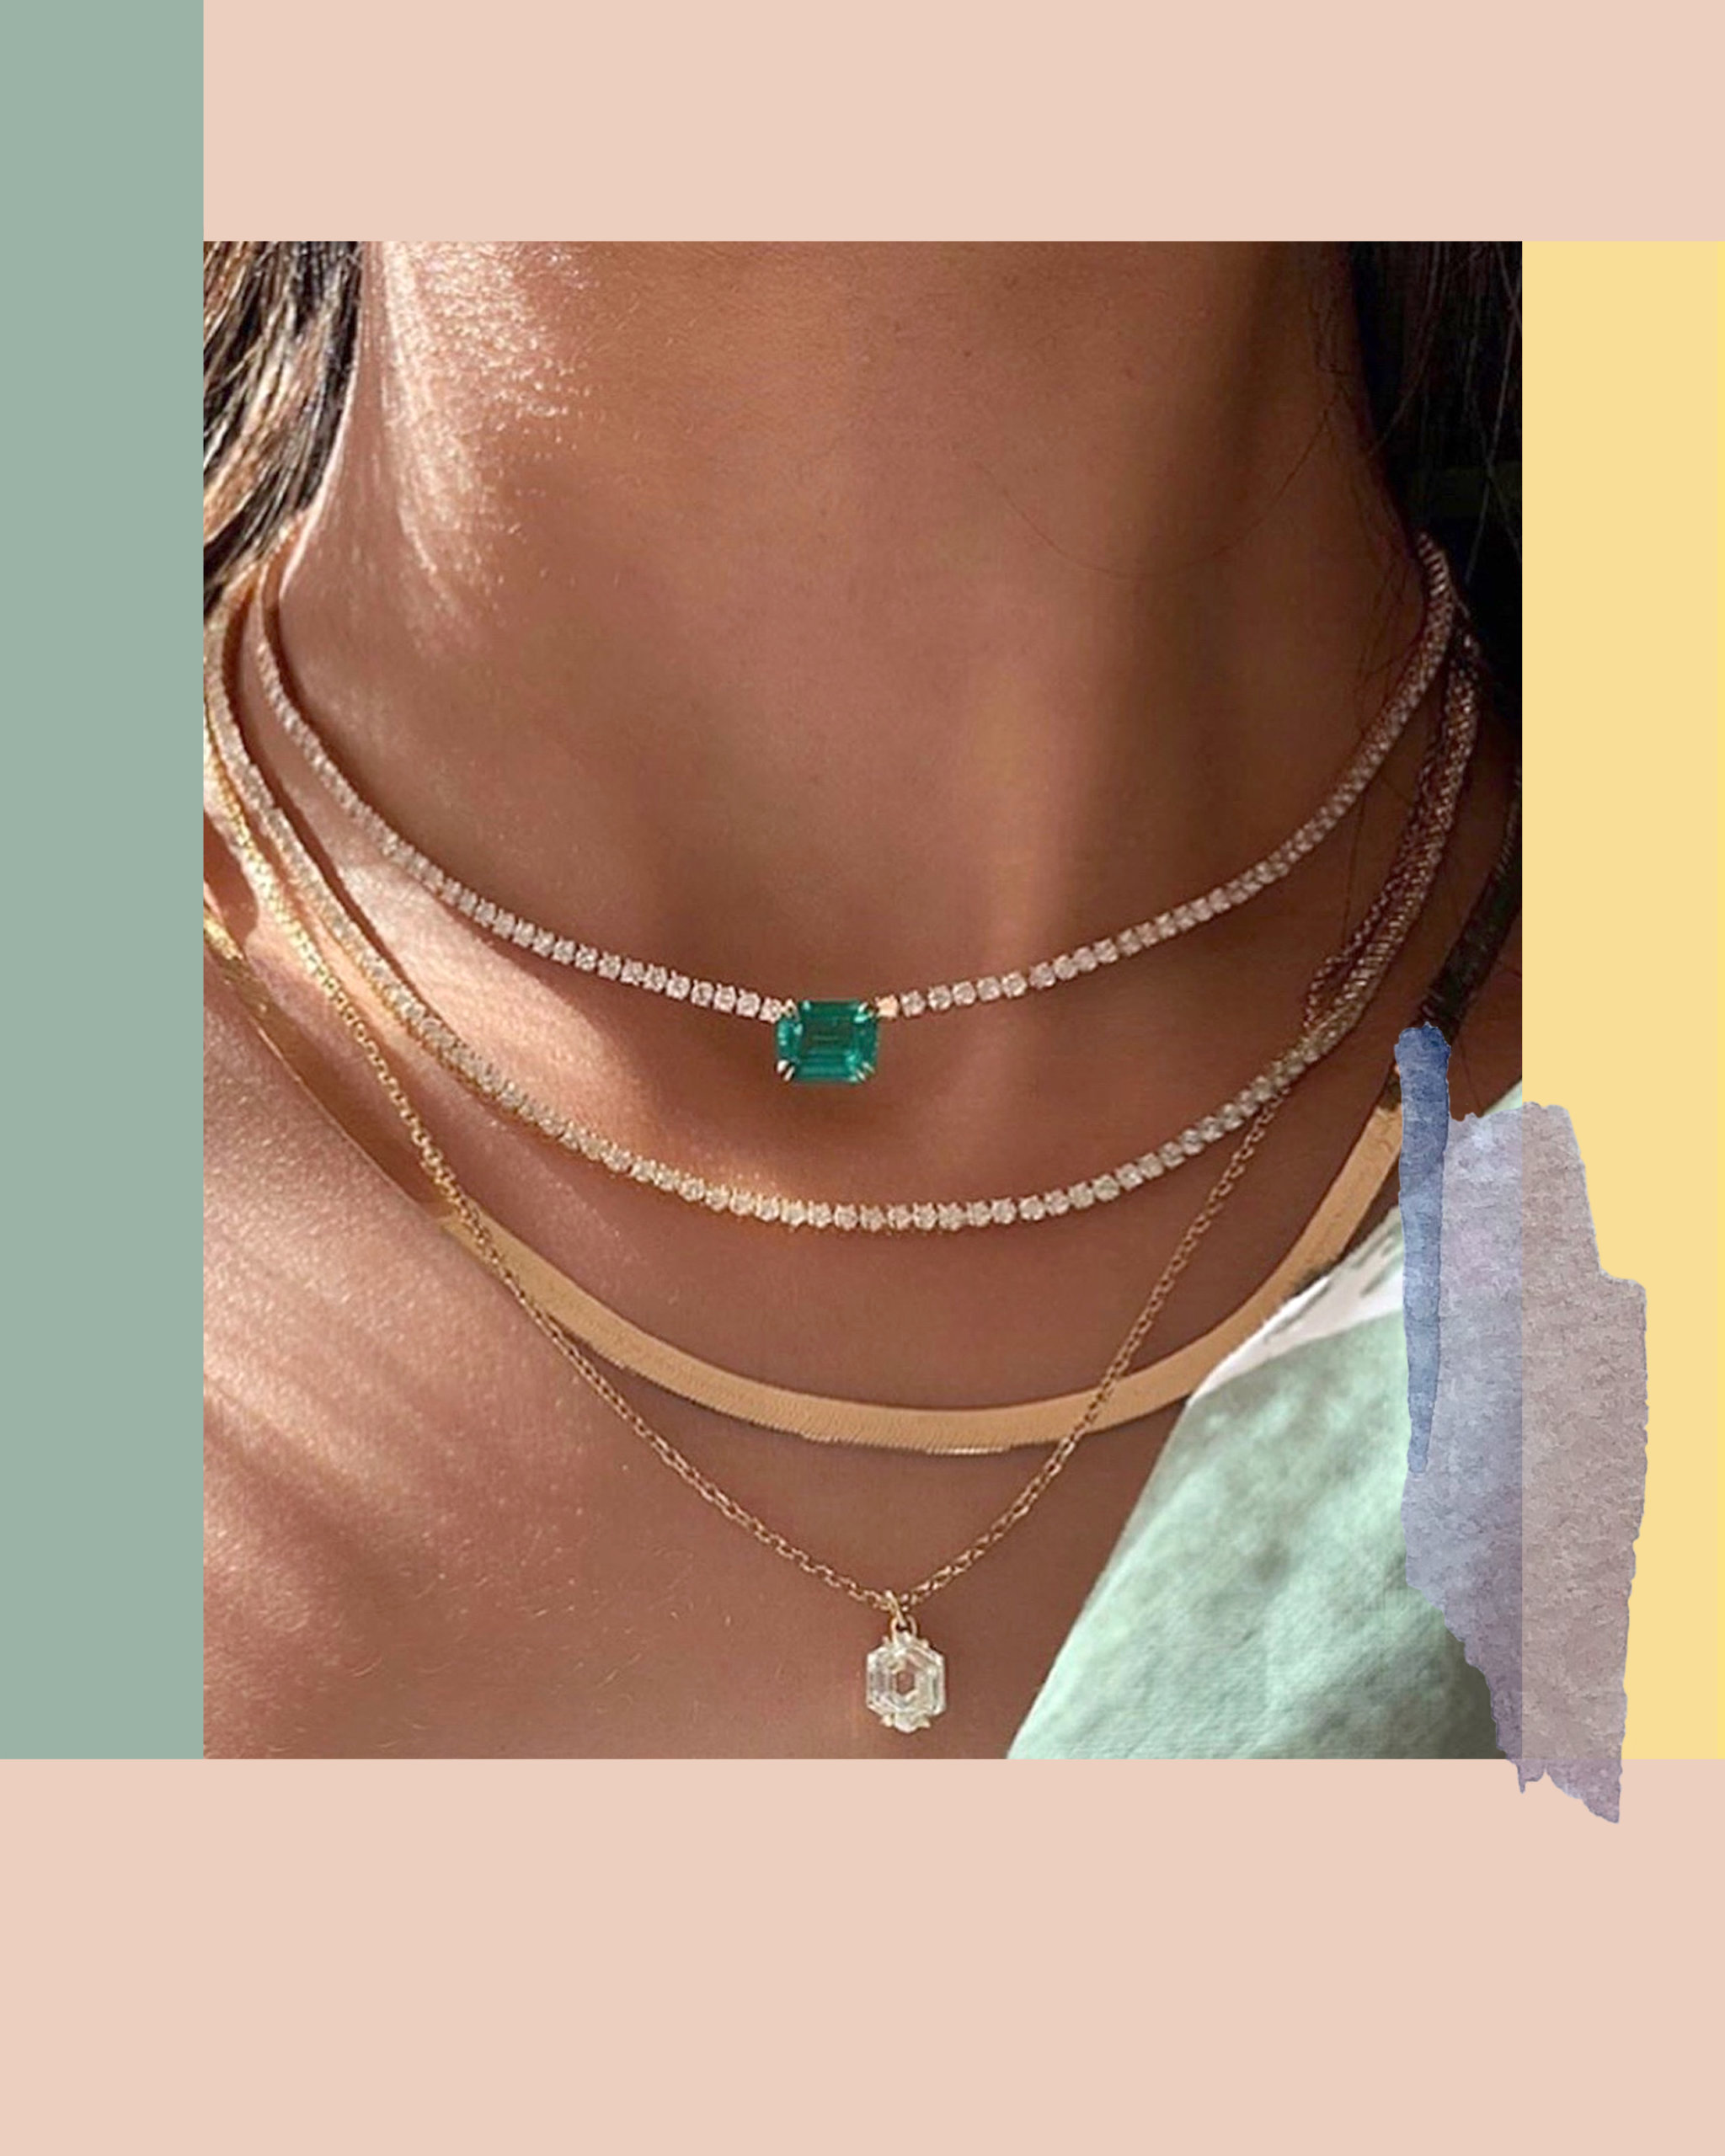 Emerald gemstone and pave diamonds set within gold layered necklaces from Anita Ko